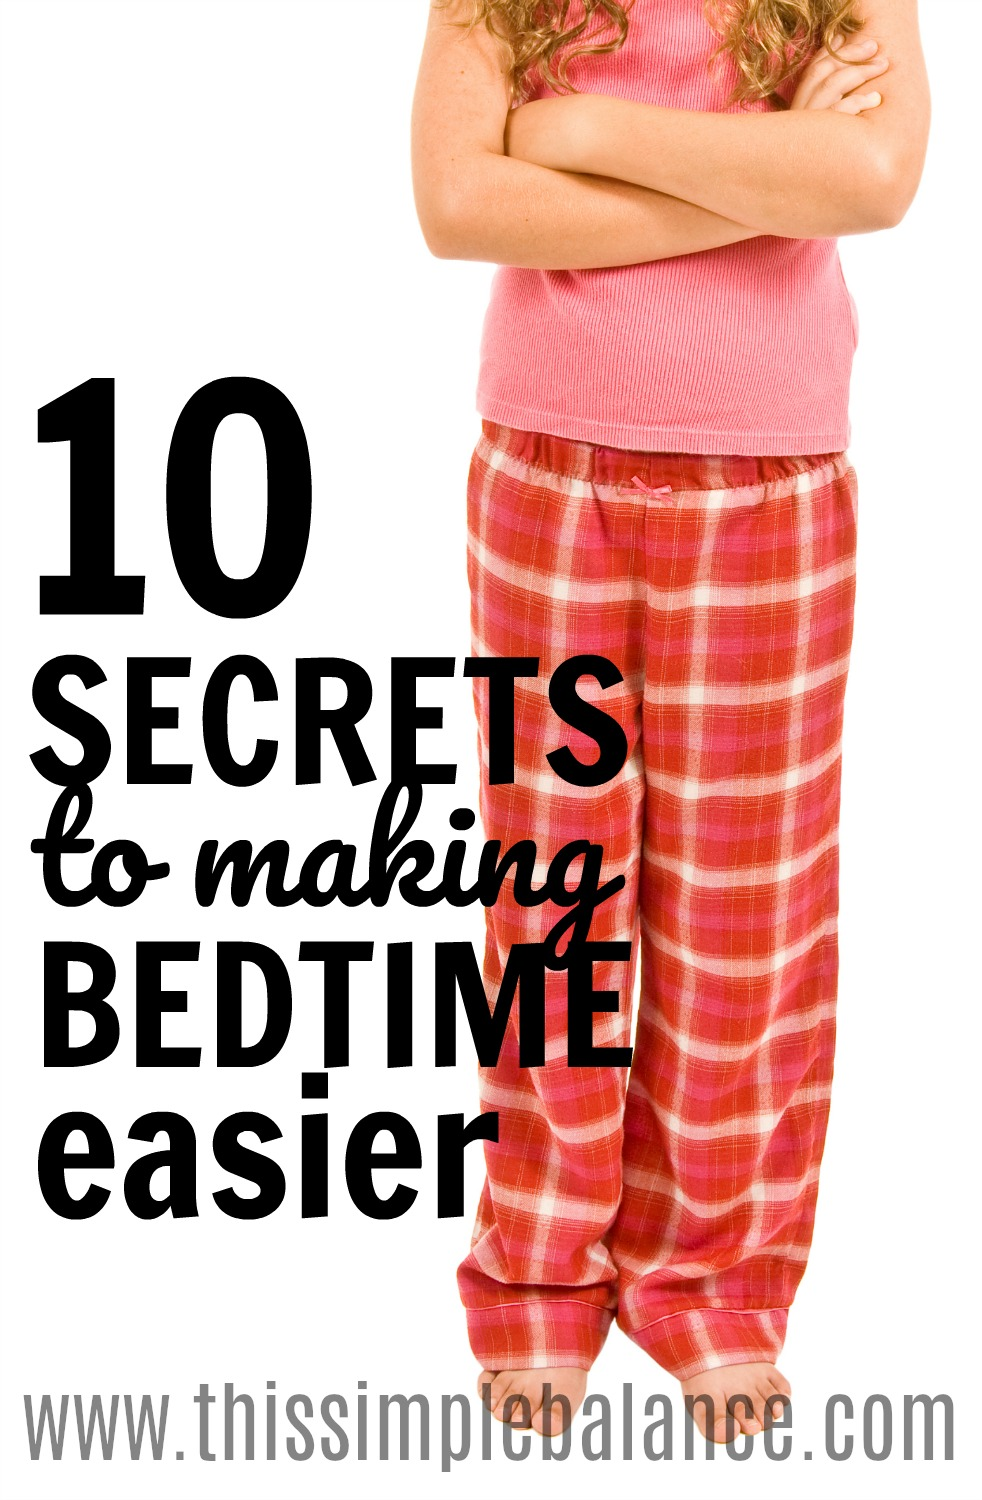 Bedtime Routines: What parent doesn't want to make bedtime easier? These tips can help you create a night routine for kids that actually WORKS and cuts the bedtime struggles in half.